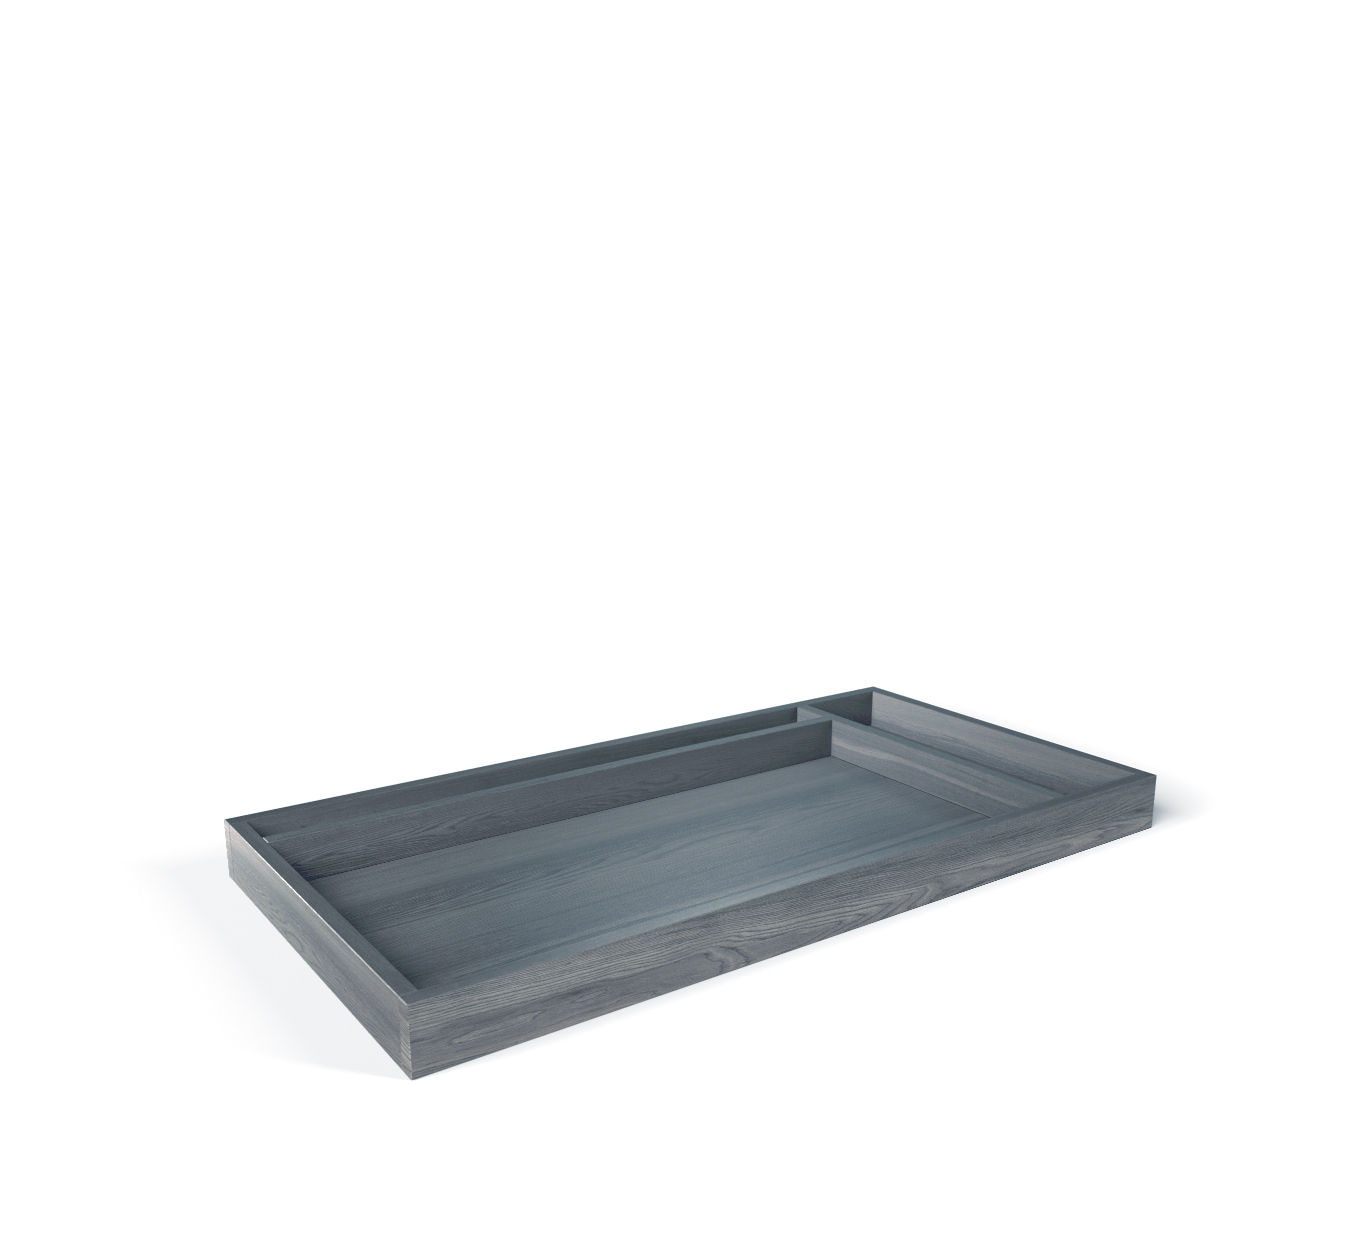 SILVA Furniture Adjustable Changing Tray - Storm